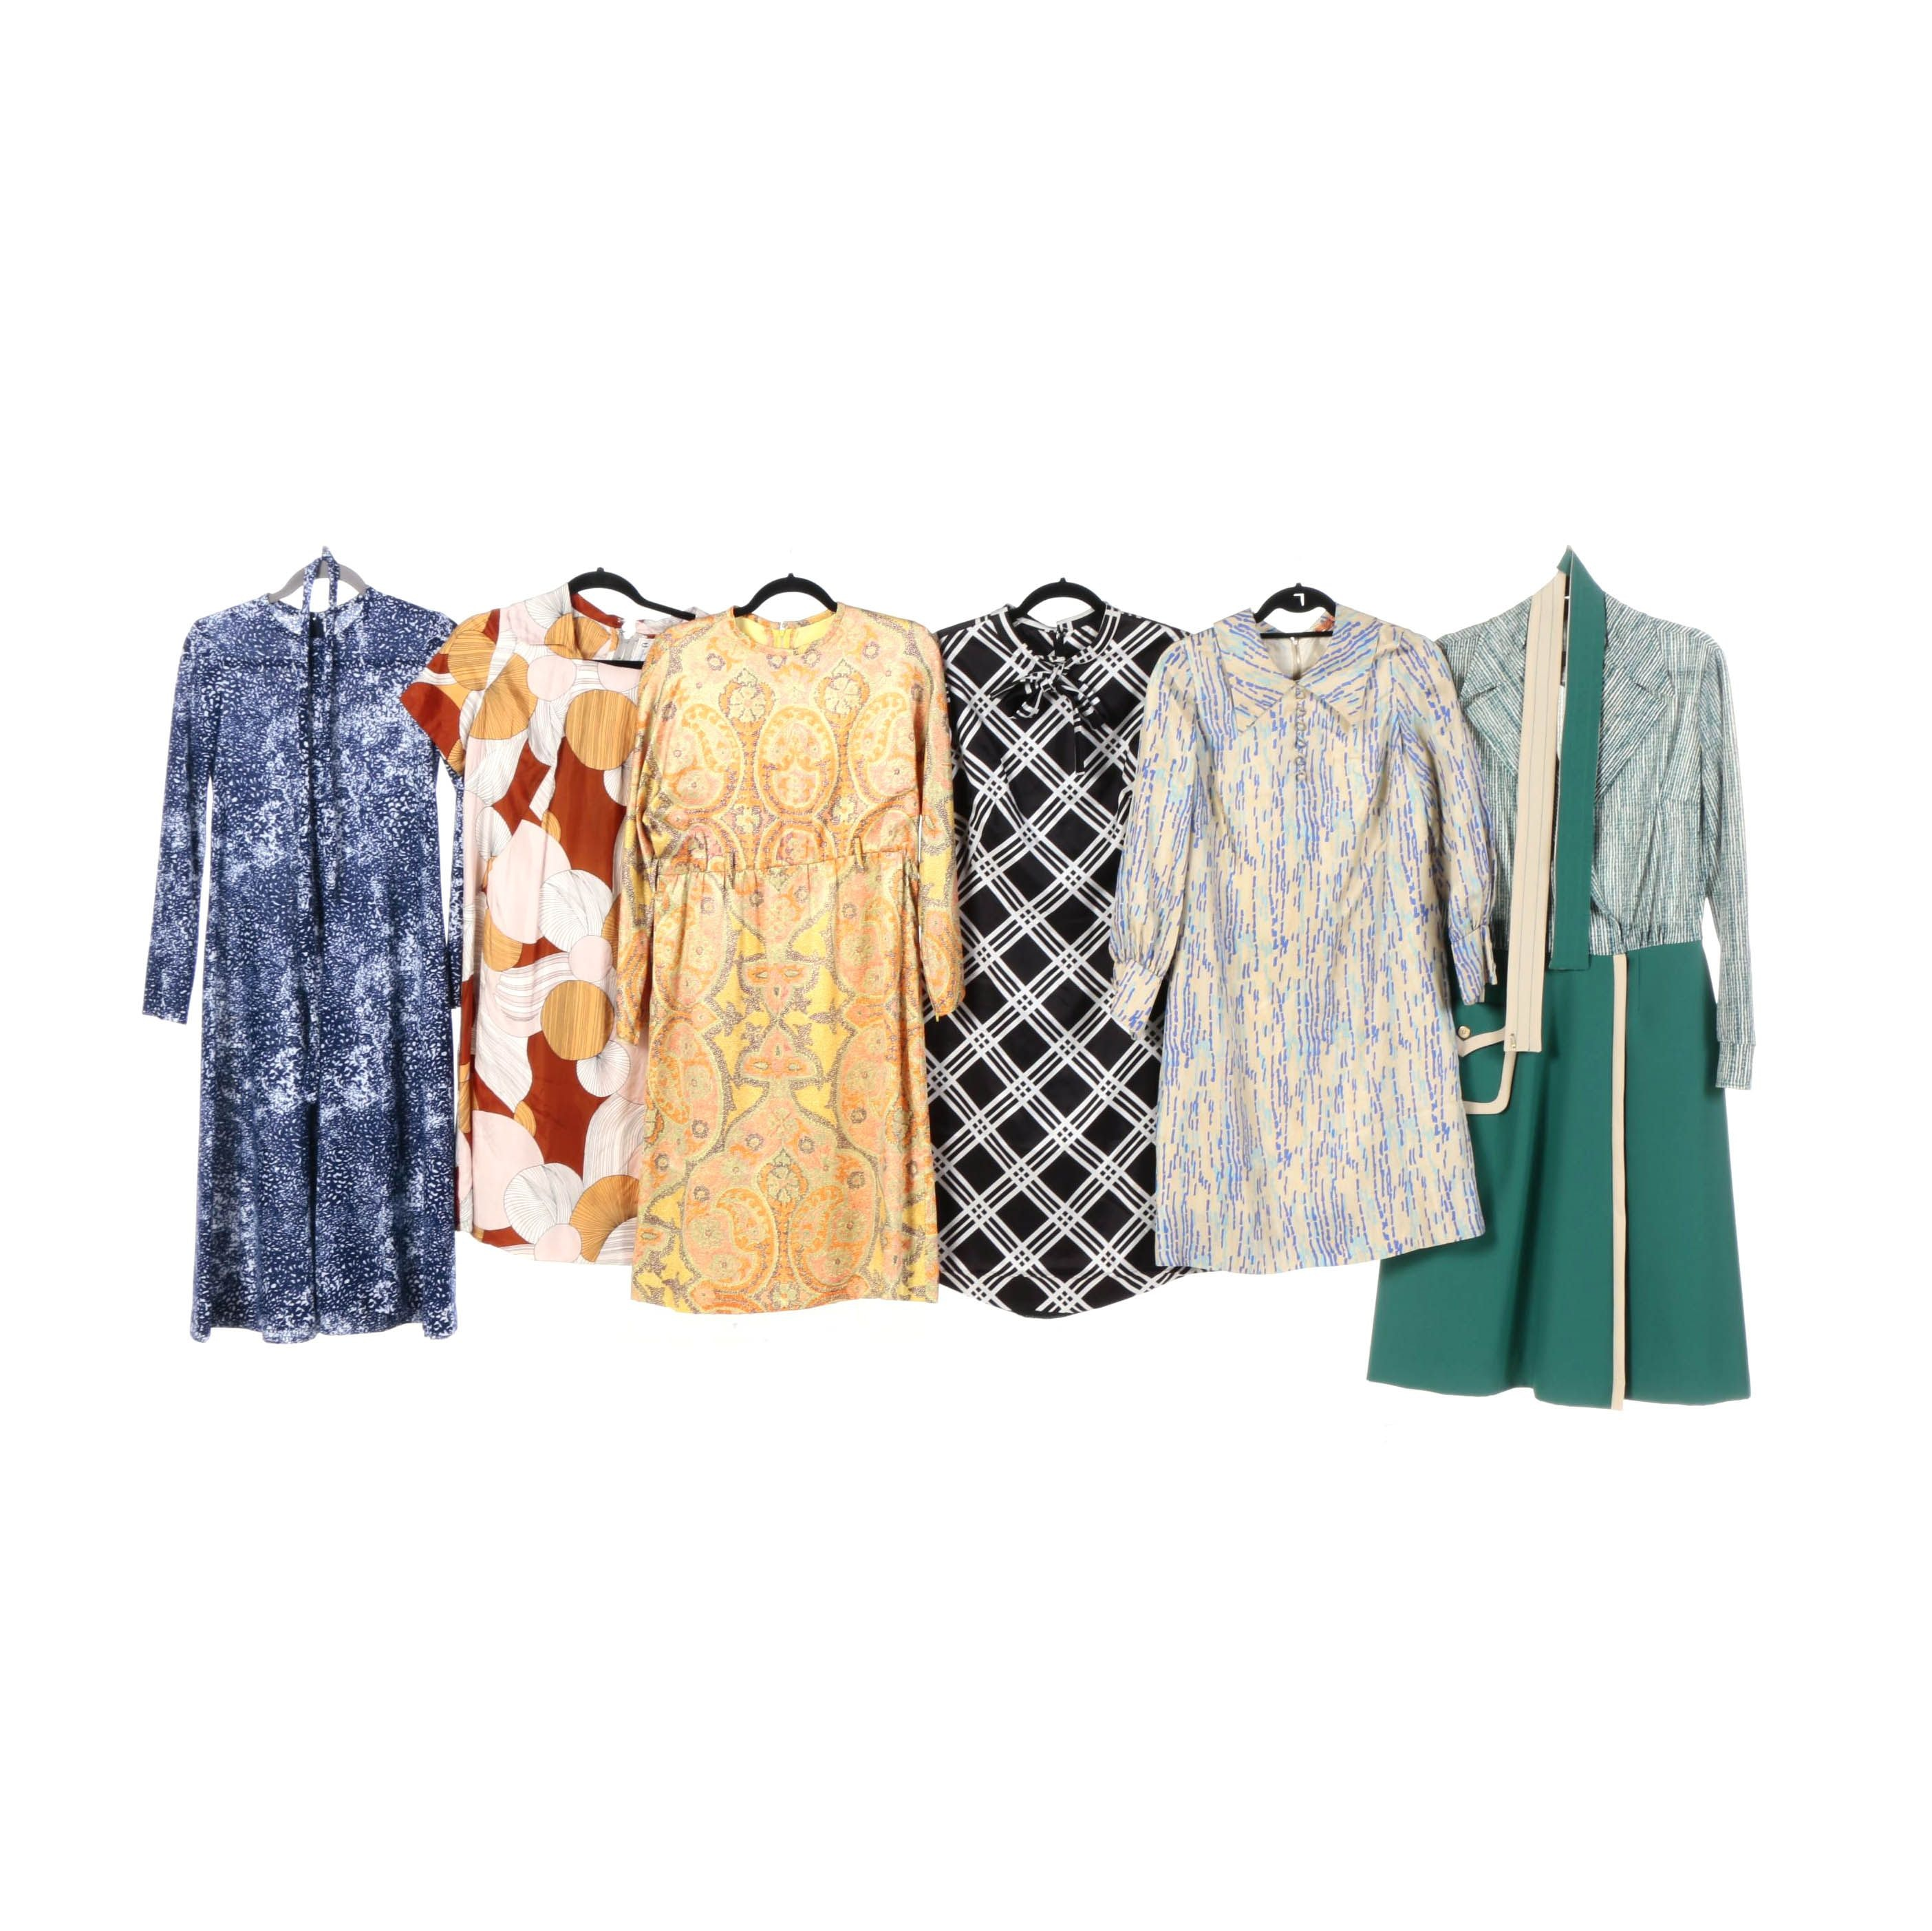 Circa 1970s Vintage Dresses Including Herman Marcus and Harold Levine